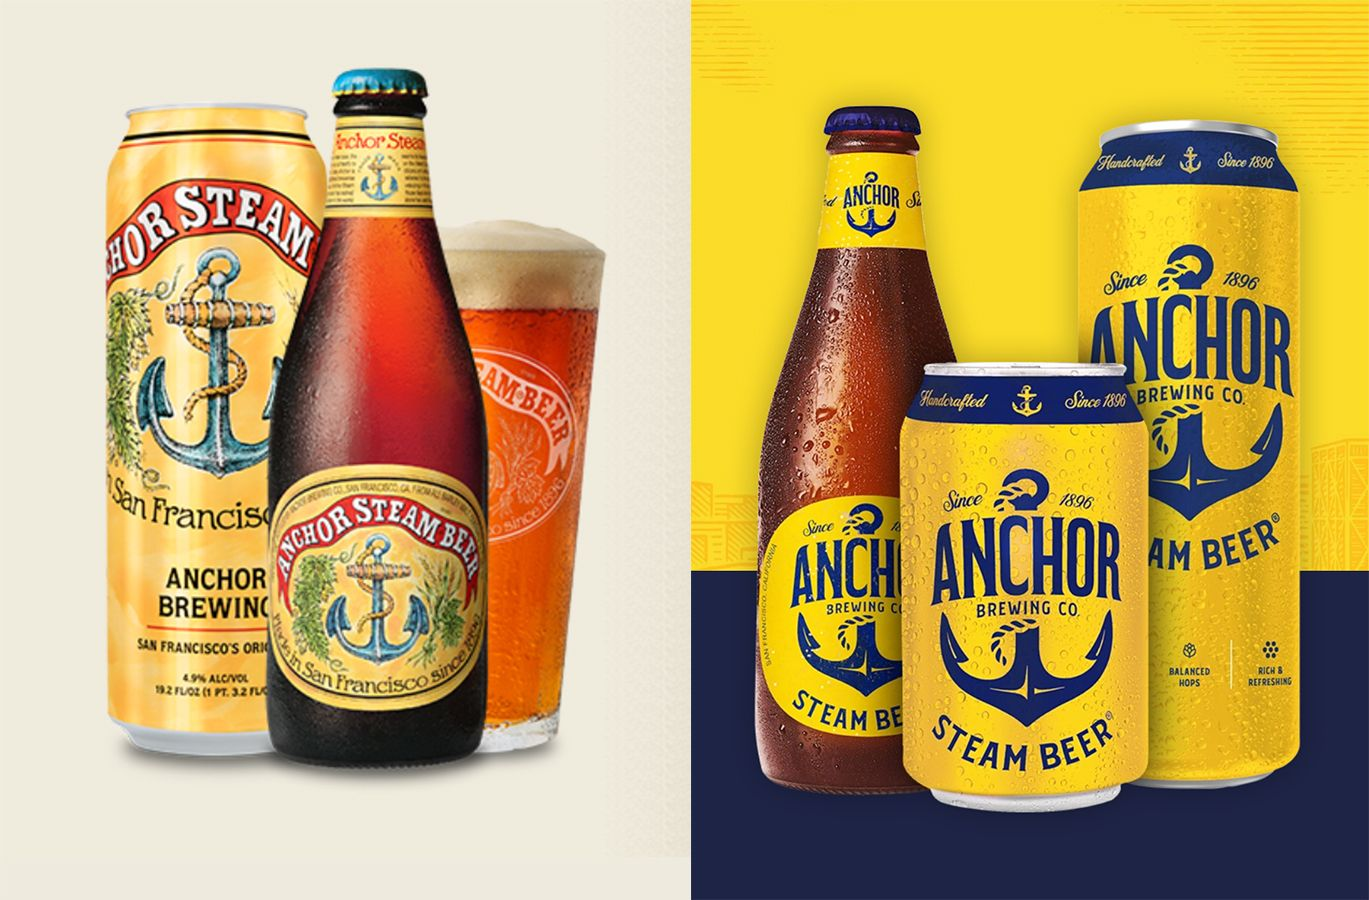 Anchor Brewing Dragged On Twitter After Nixing Iconic Label In Favor of Blue and Yellow Design